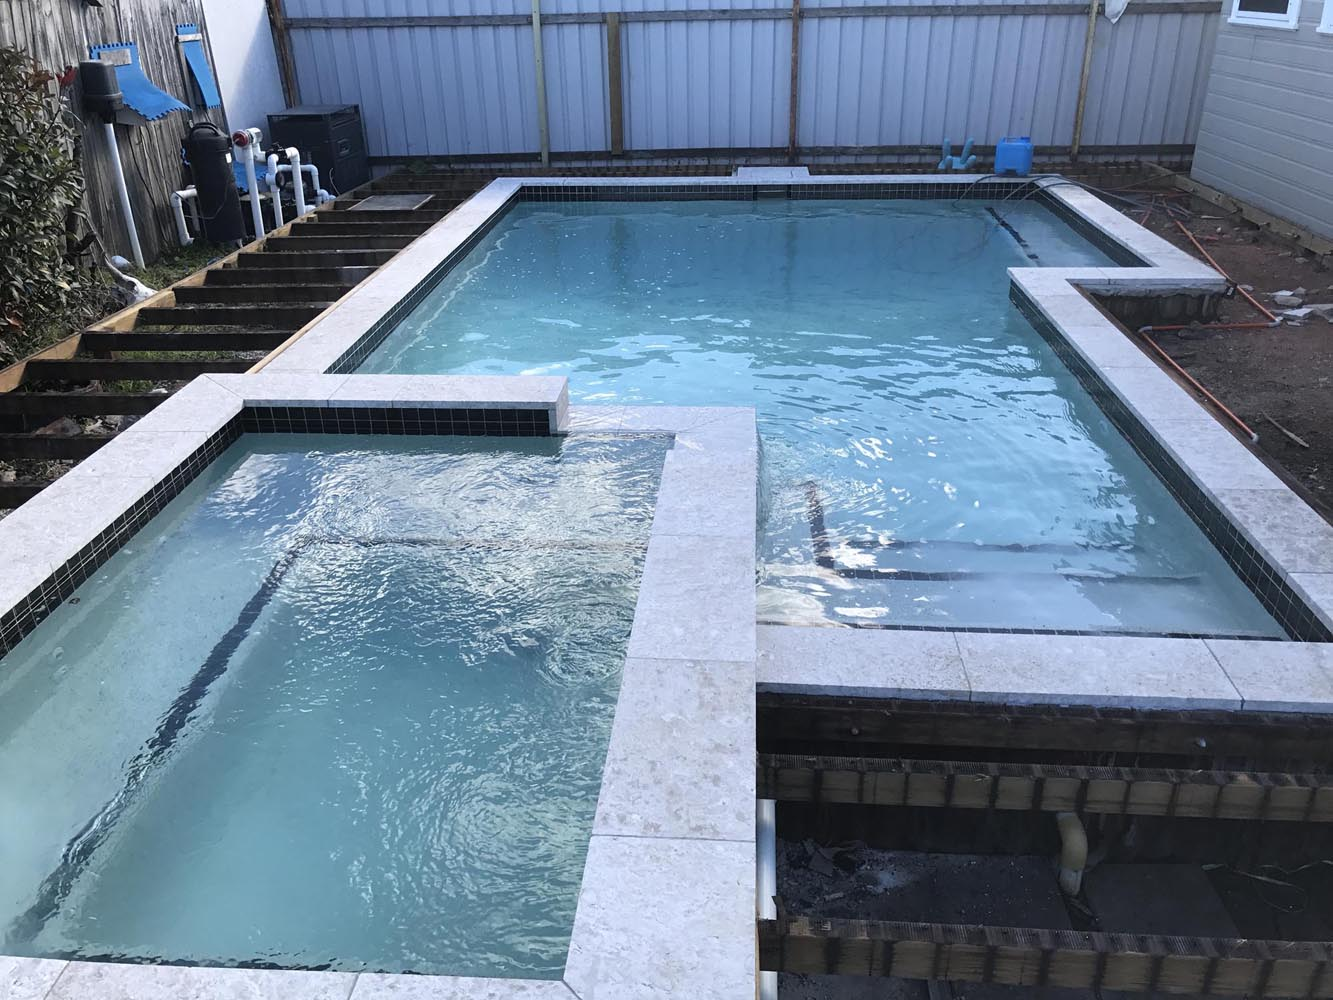 What Chemicals Are Needed For Pebblecrete Pools | United Pool Renovations Blog